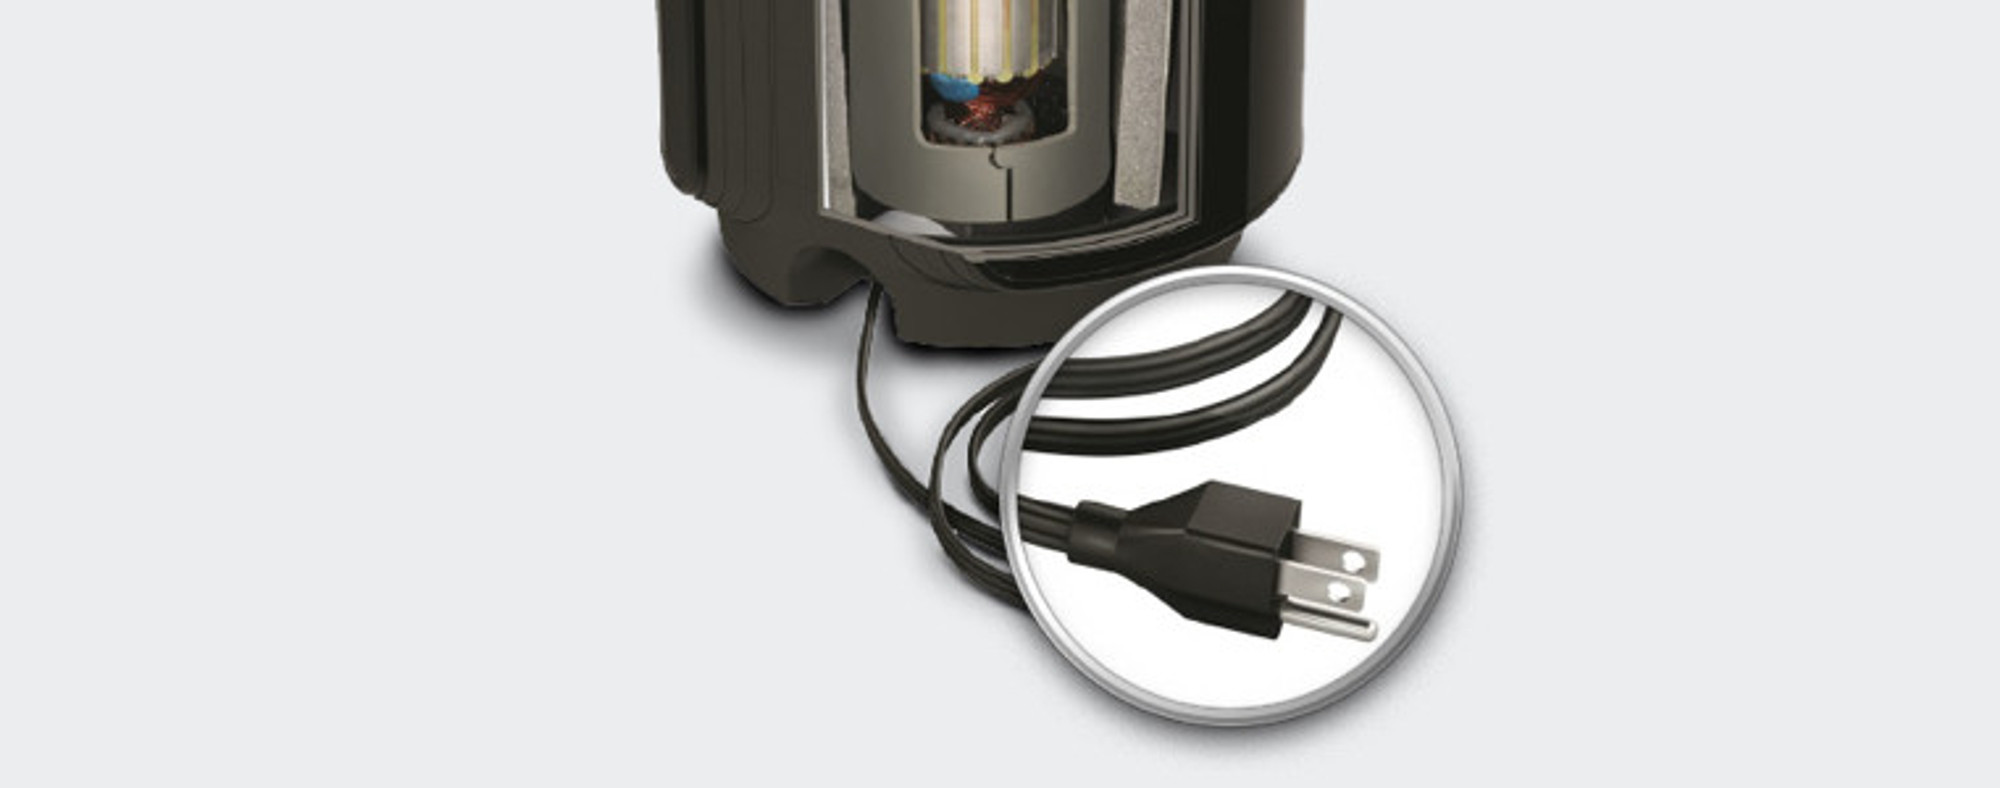 Pre-Installed Power Cord